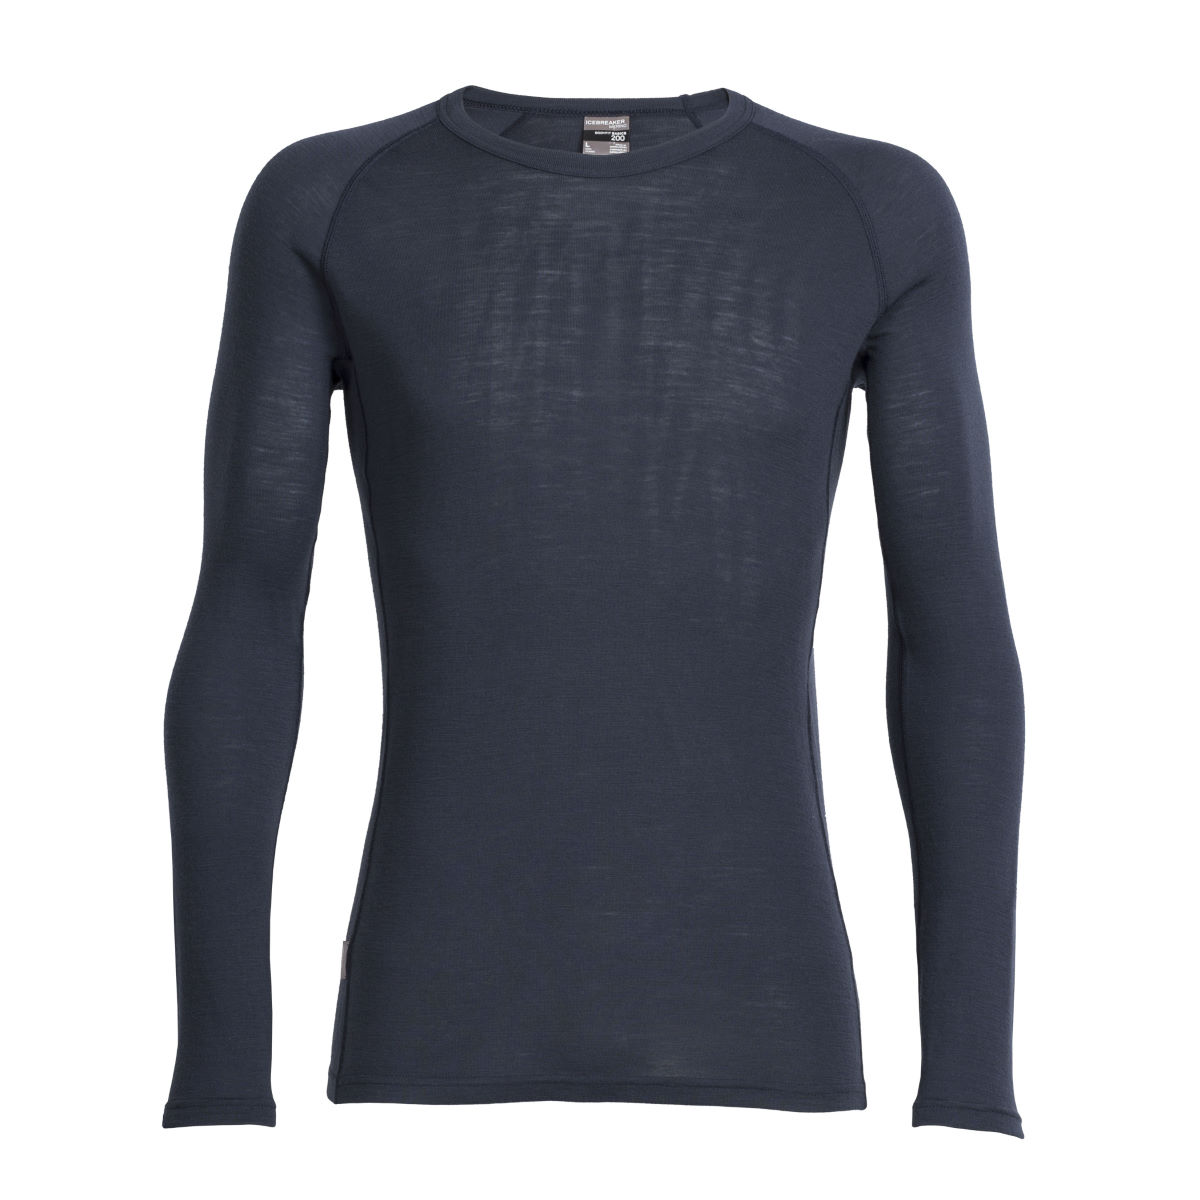 Maillot Icebreaker Everyday (manches longues, col rond, PE16) - S